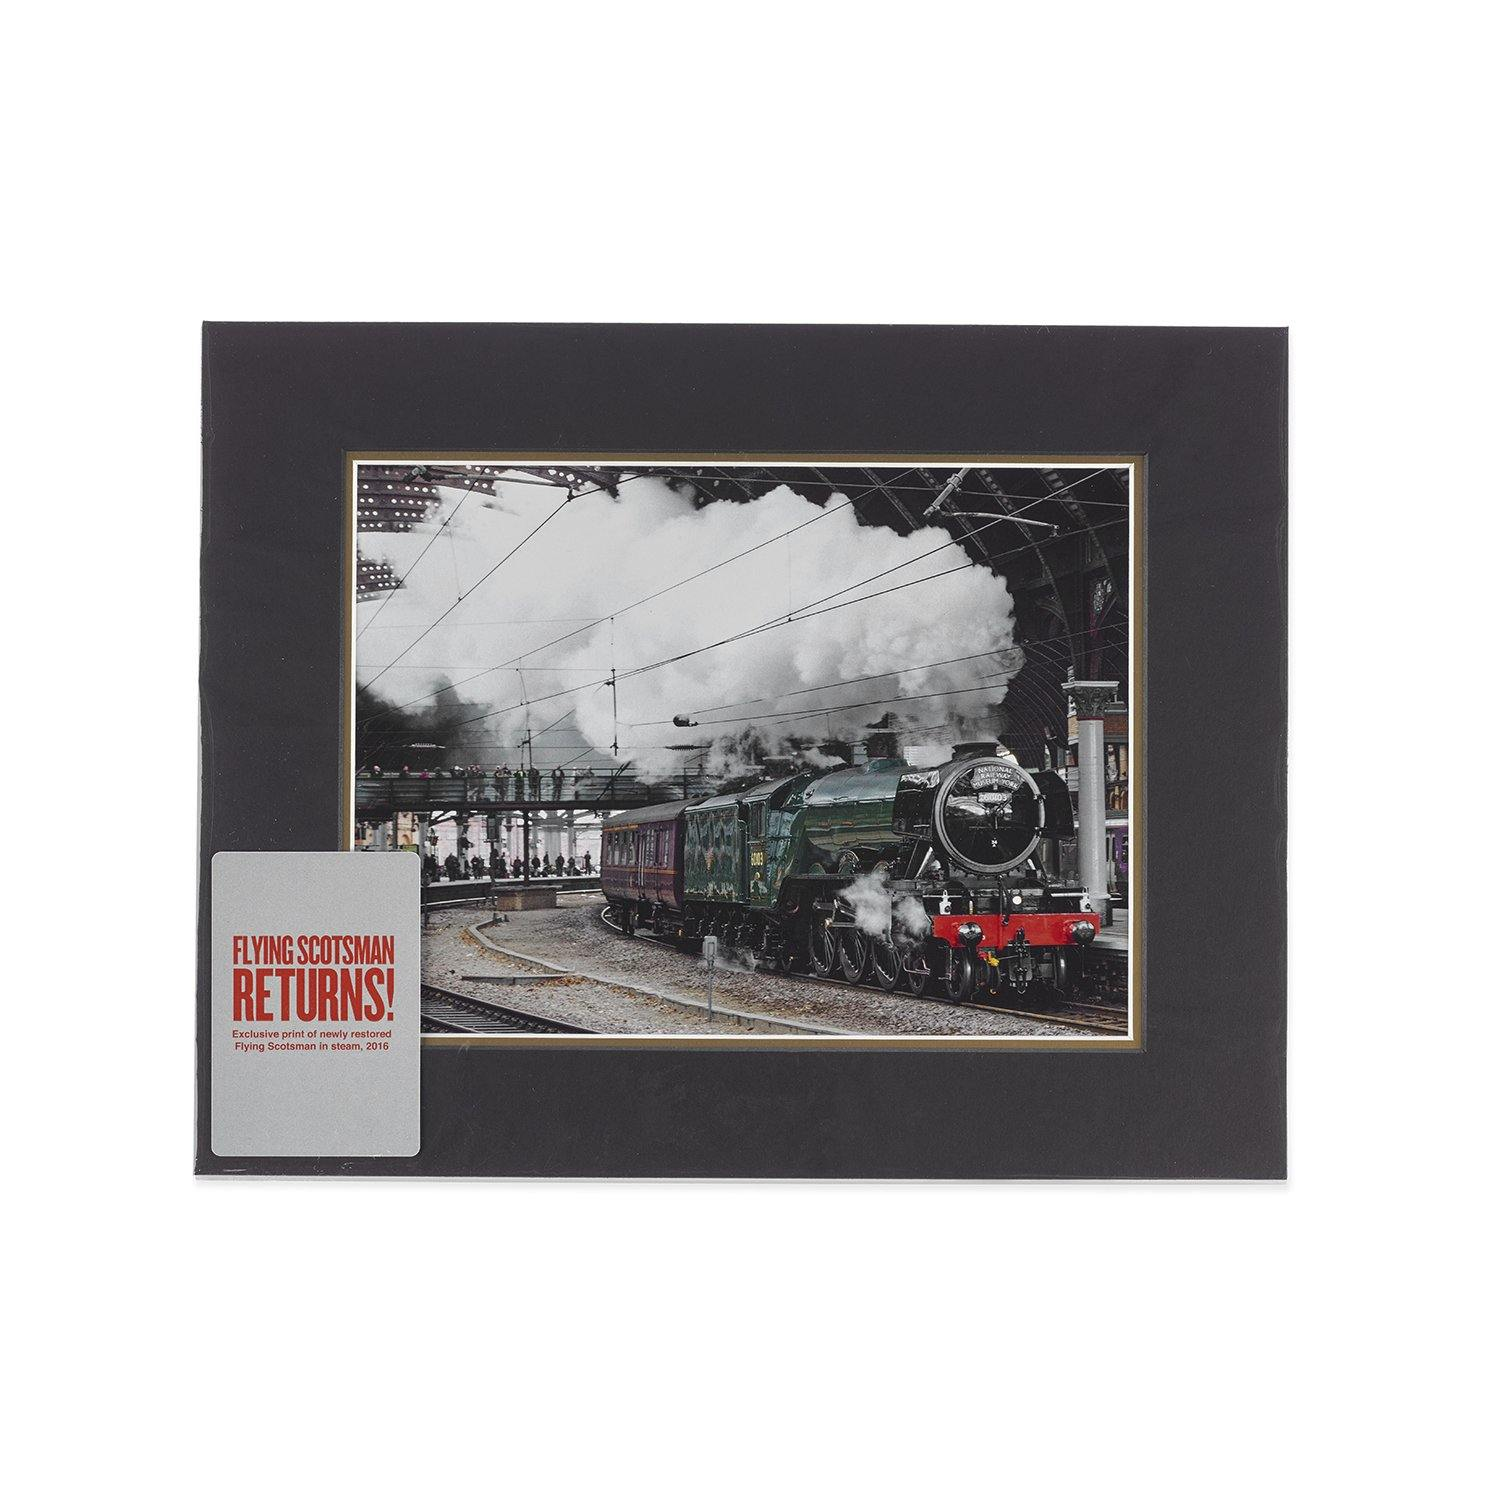 2016 Flying Scotsman Returns to York Station Mounted Print1